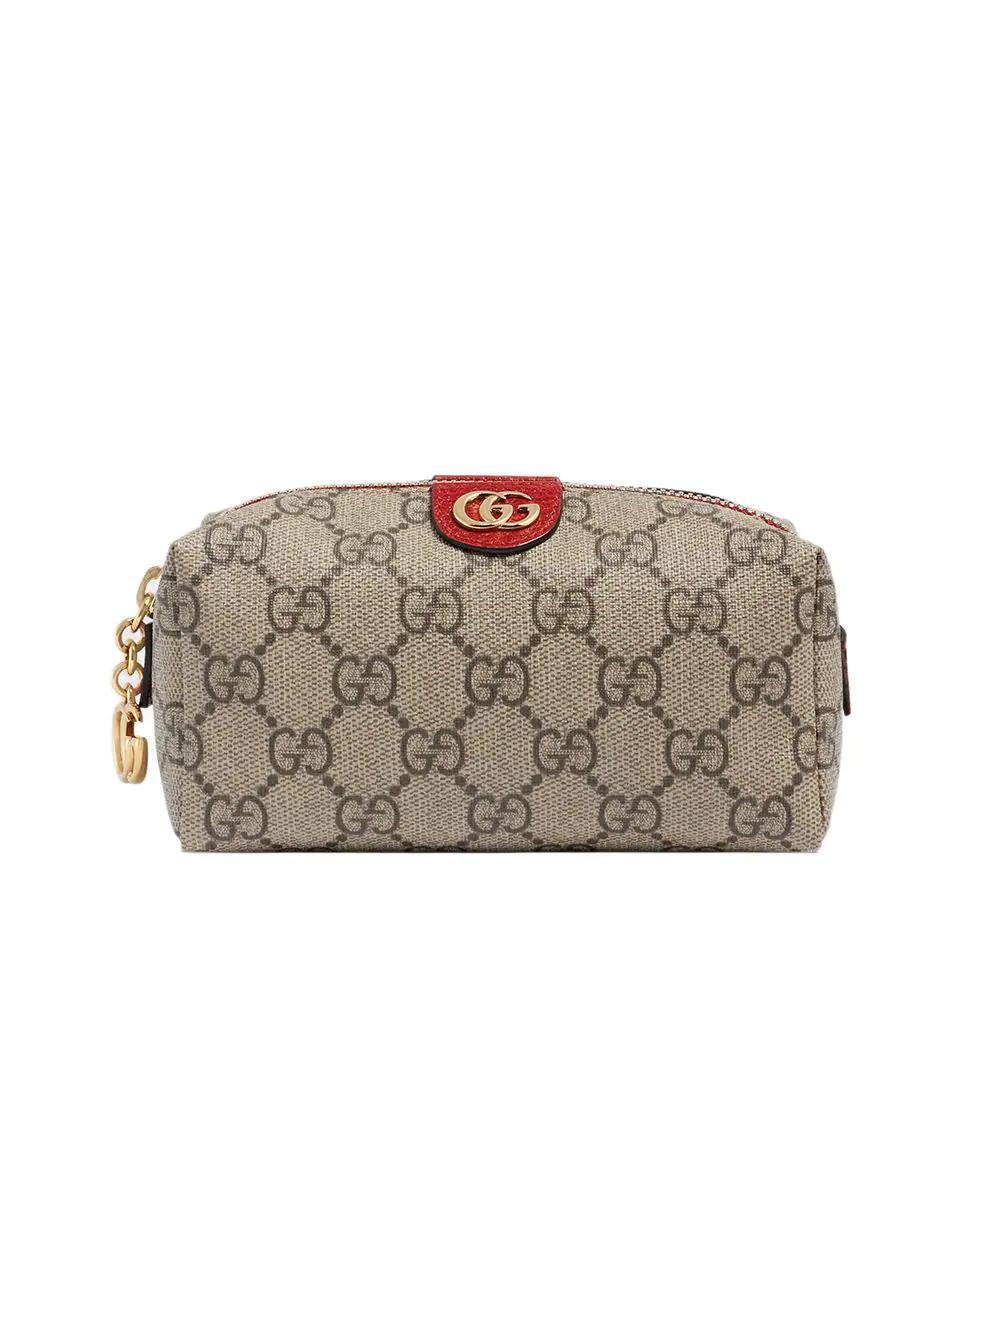 ef0d5c9b383ae0 Gucci Ophidia Gg Supreme Canvas Make-Up Bag In Neutrals   ModeSens